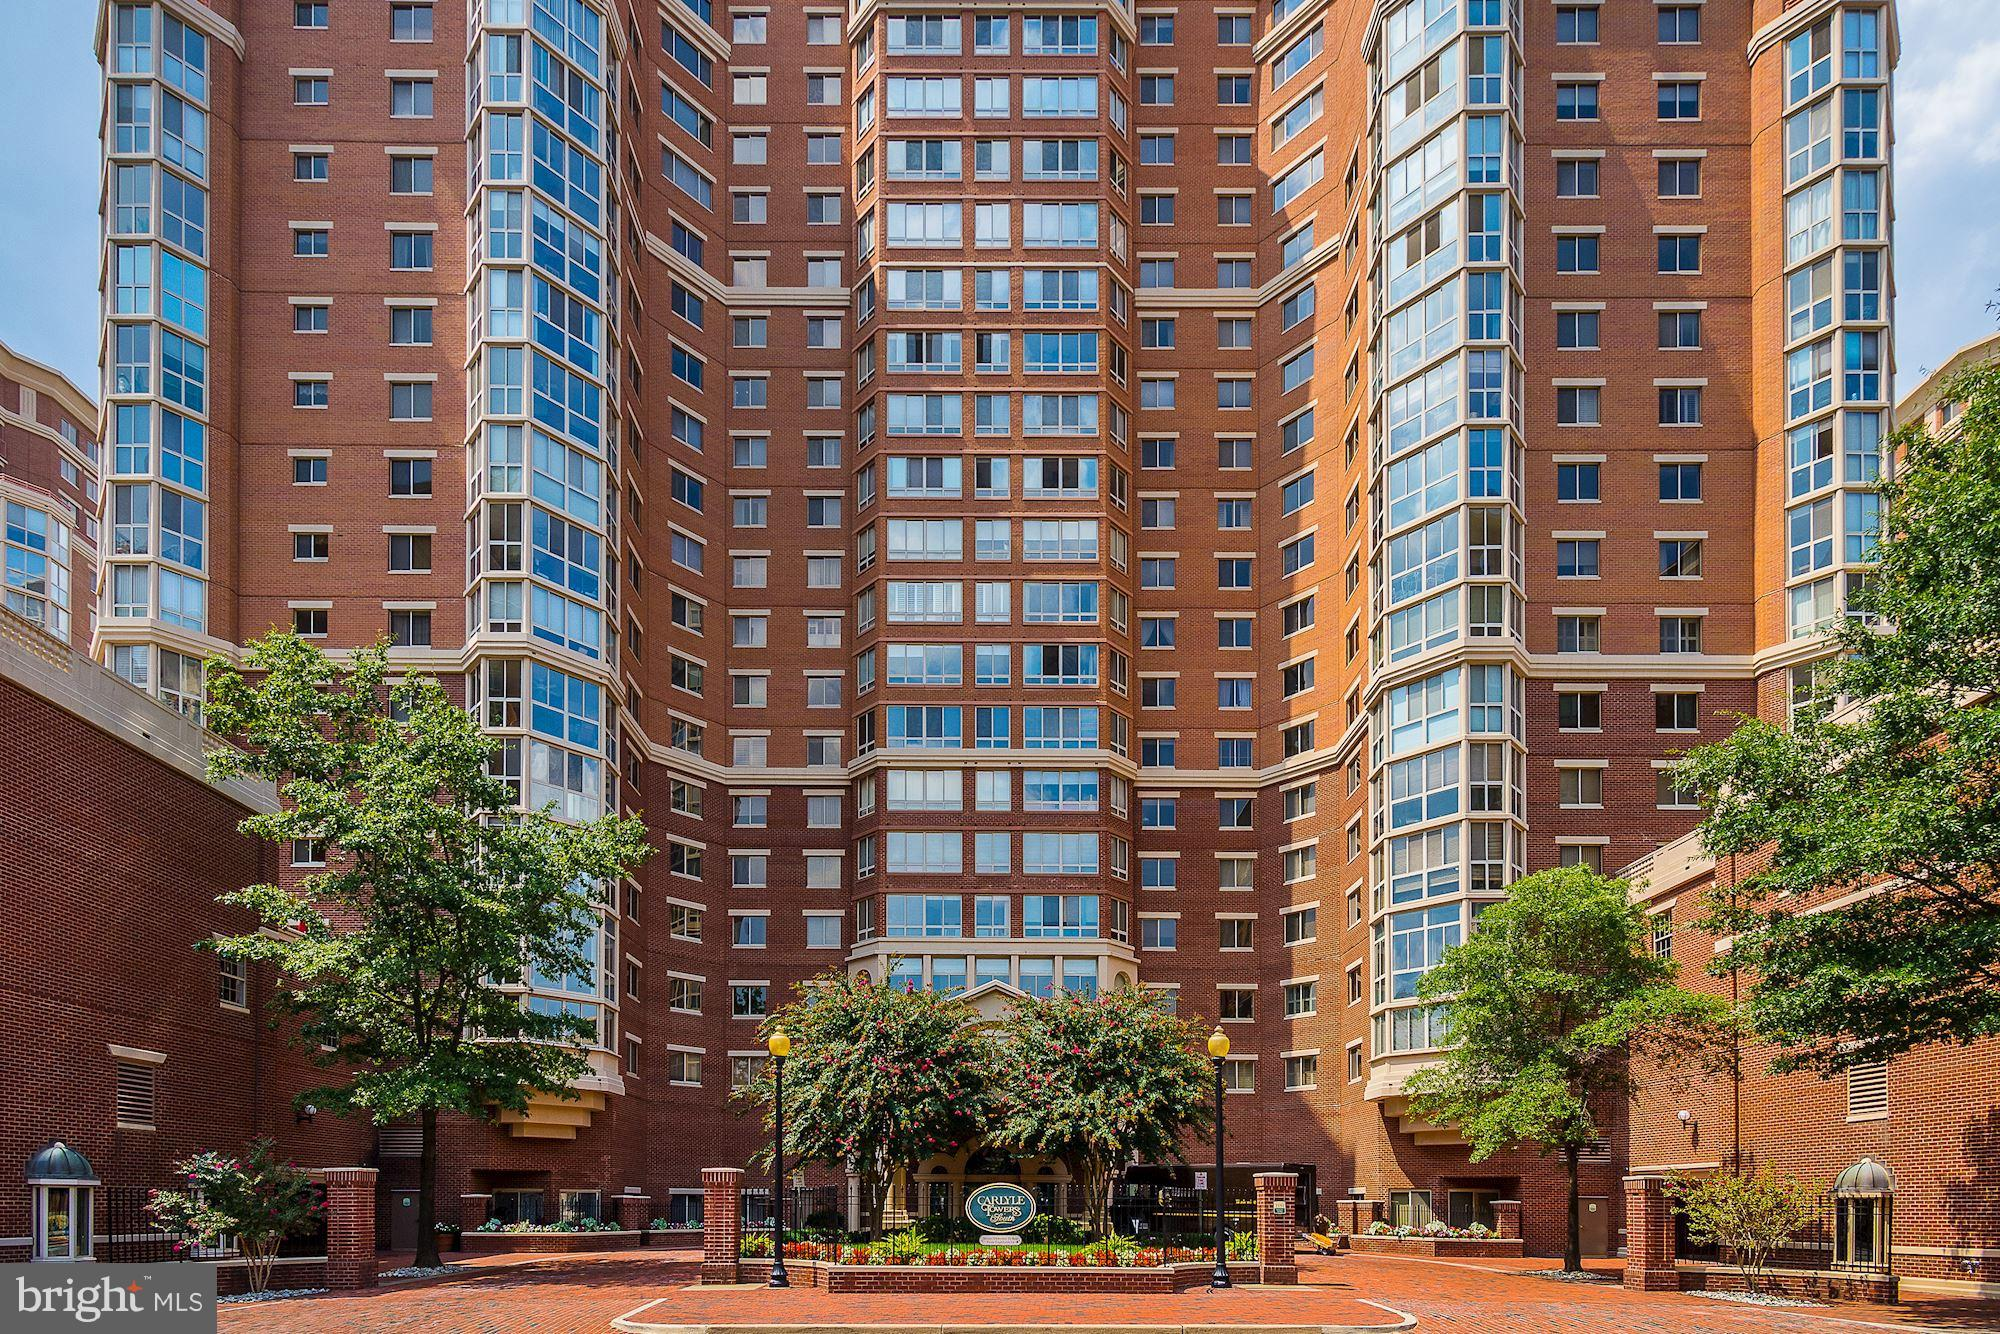 Rare 2400 sq ft 3BR, 2.5BA in Carlyle Towers. Great flow. 2 Sunrooms w/17th fl views of vibrant sunsets, DC fireworks, Masonic Temple. Striking Brazilian Chestnut floor, upgraded appliances. 2 Grg Sp, 2 Strg Units. Full-service, max amenities. 4blks to Amtrak, VRE, King St or Eisenhower Ave Metro, metro 5-9min to proposed Amazon HQ2; 7min to Airport. 1 to 4blks to Old Town Alex, Whole Foods, Fed Ct House, PTO, NSF.